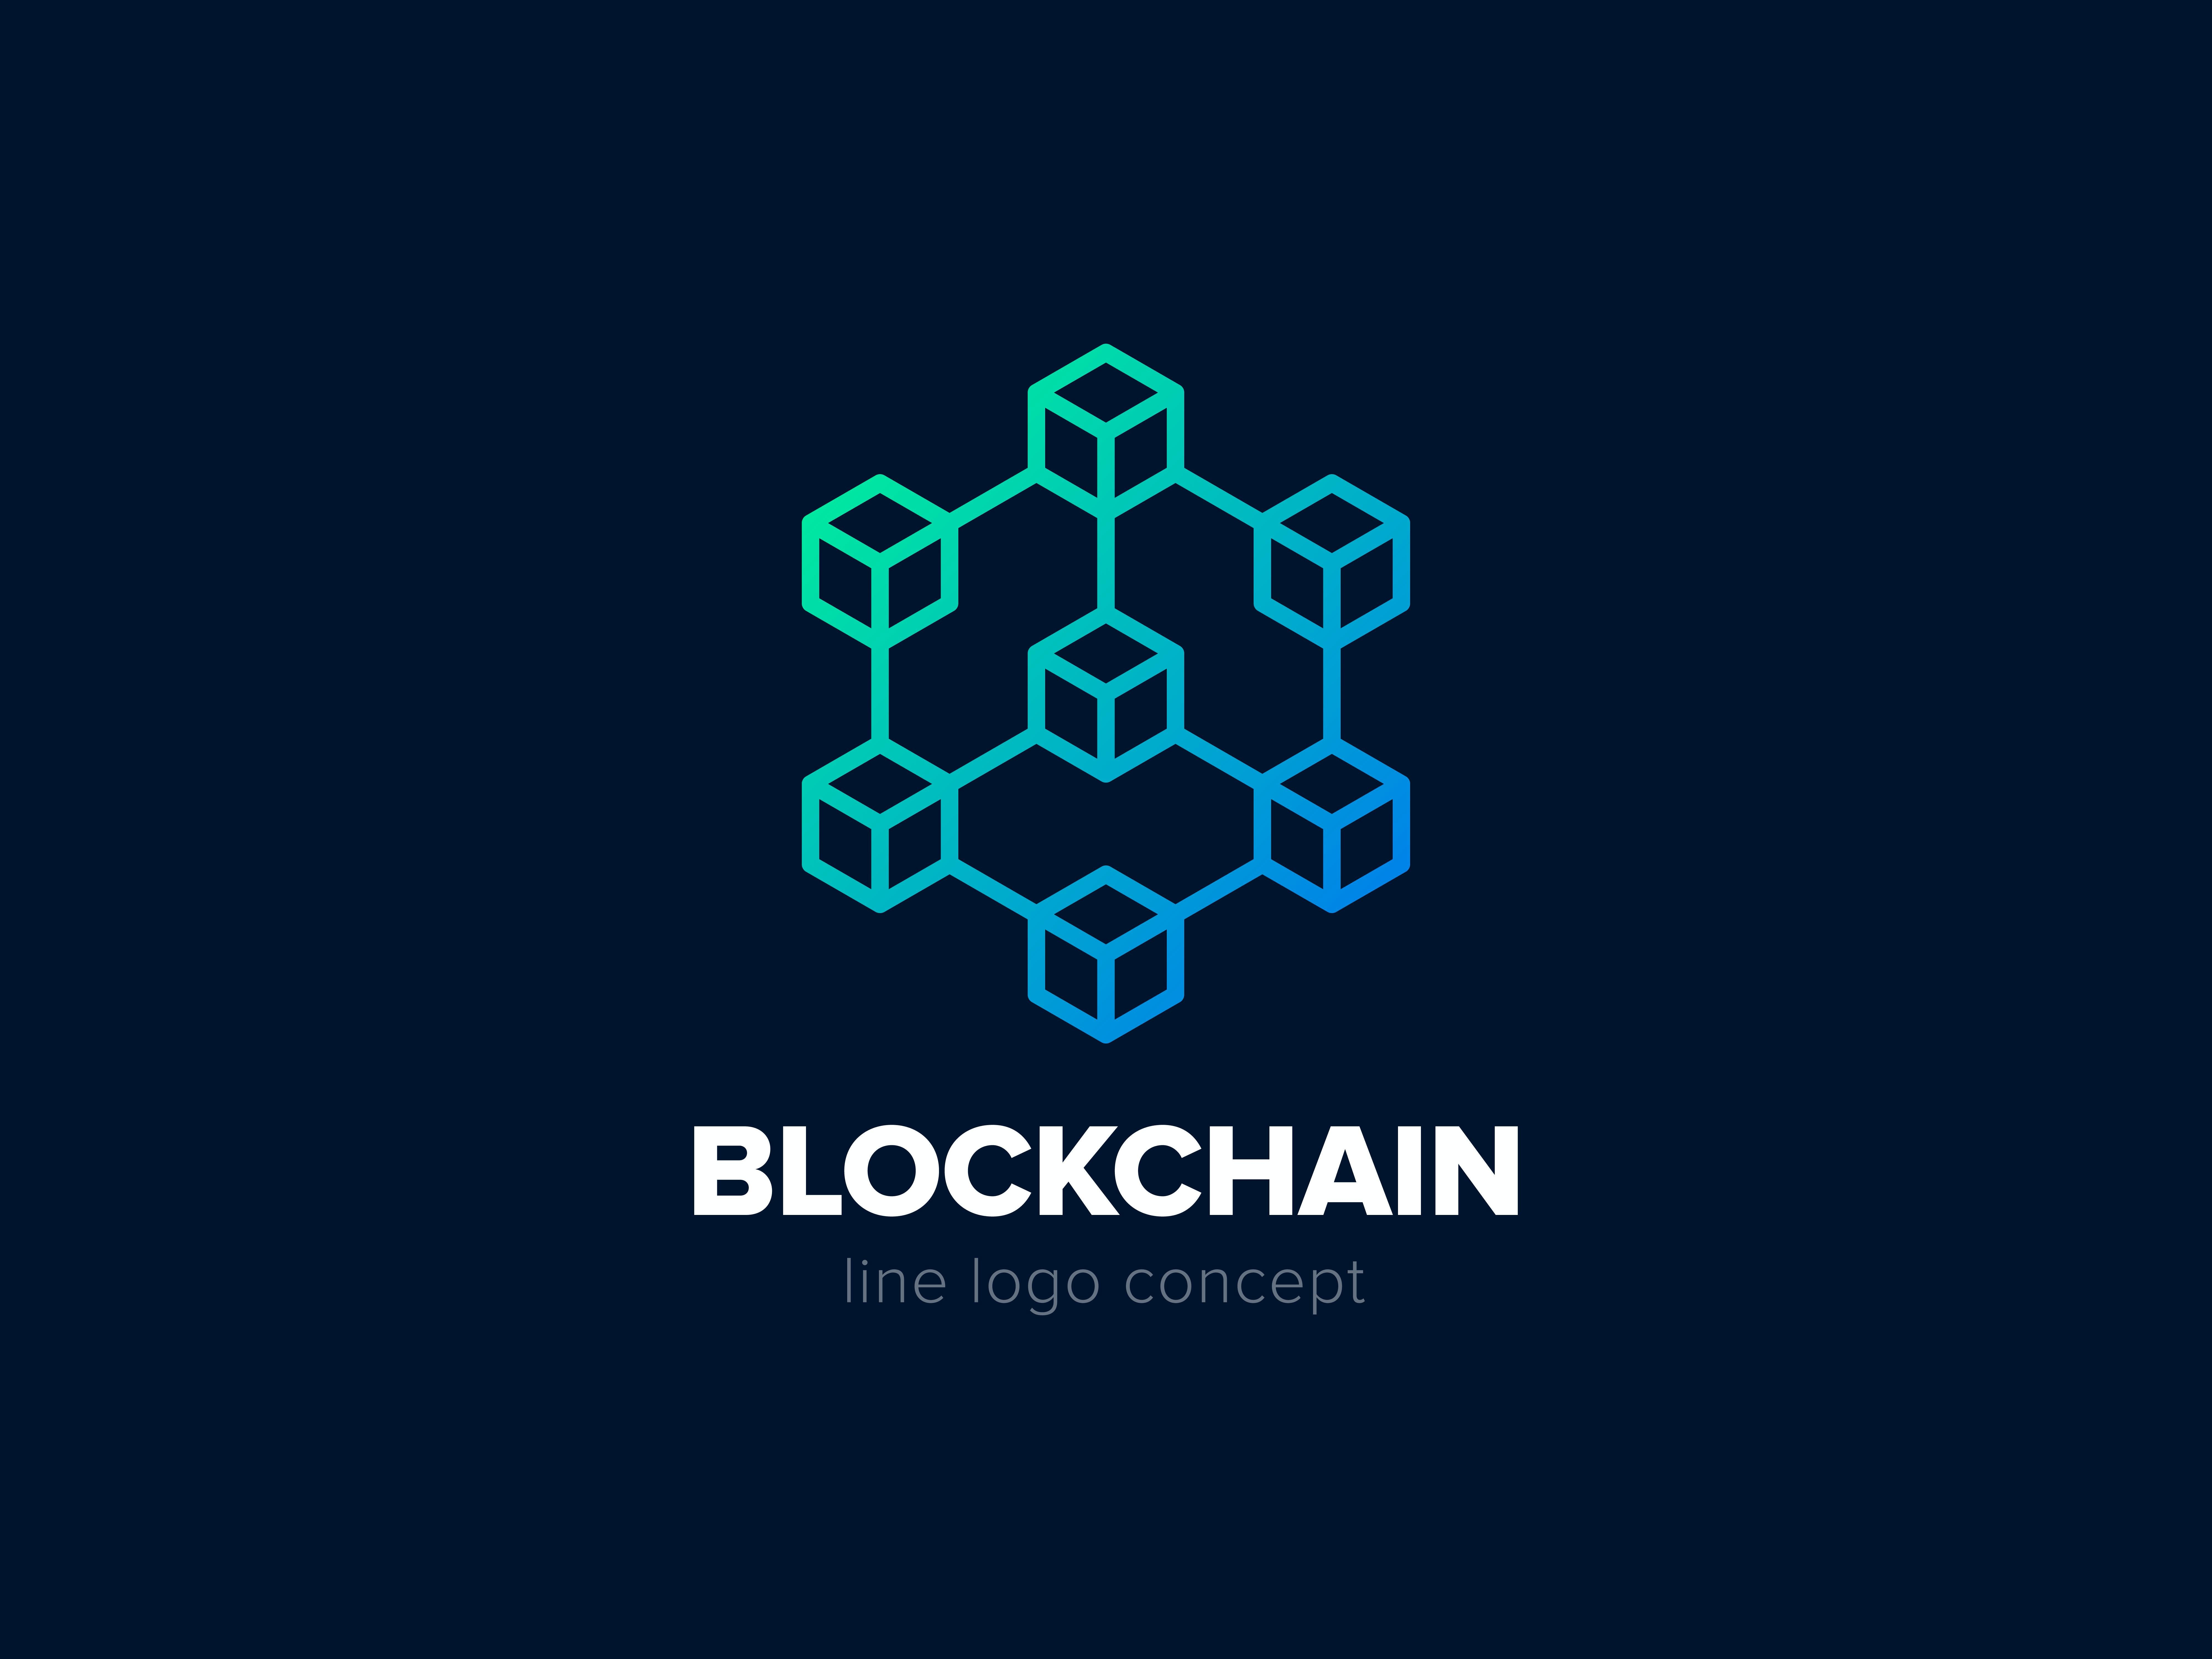 Blockchain Training in Lucerne starting December 8, 2018 for Beginners-Bitcoin training-introduction to cryptocurrency-ico-ethereum-hyperledger-smart contracts training